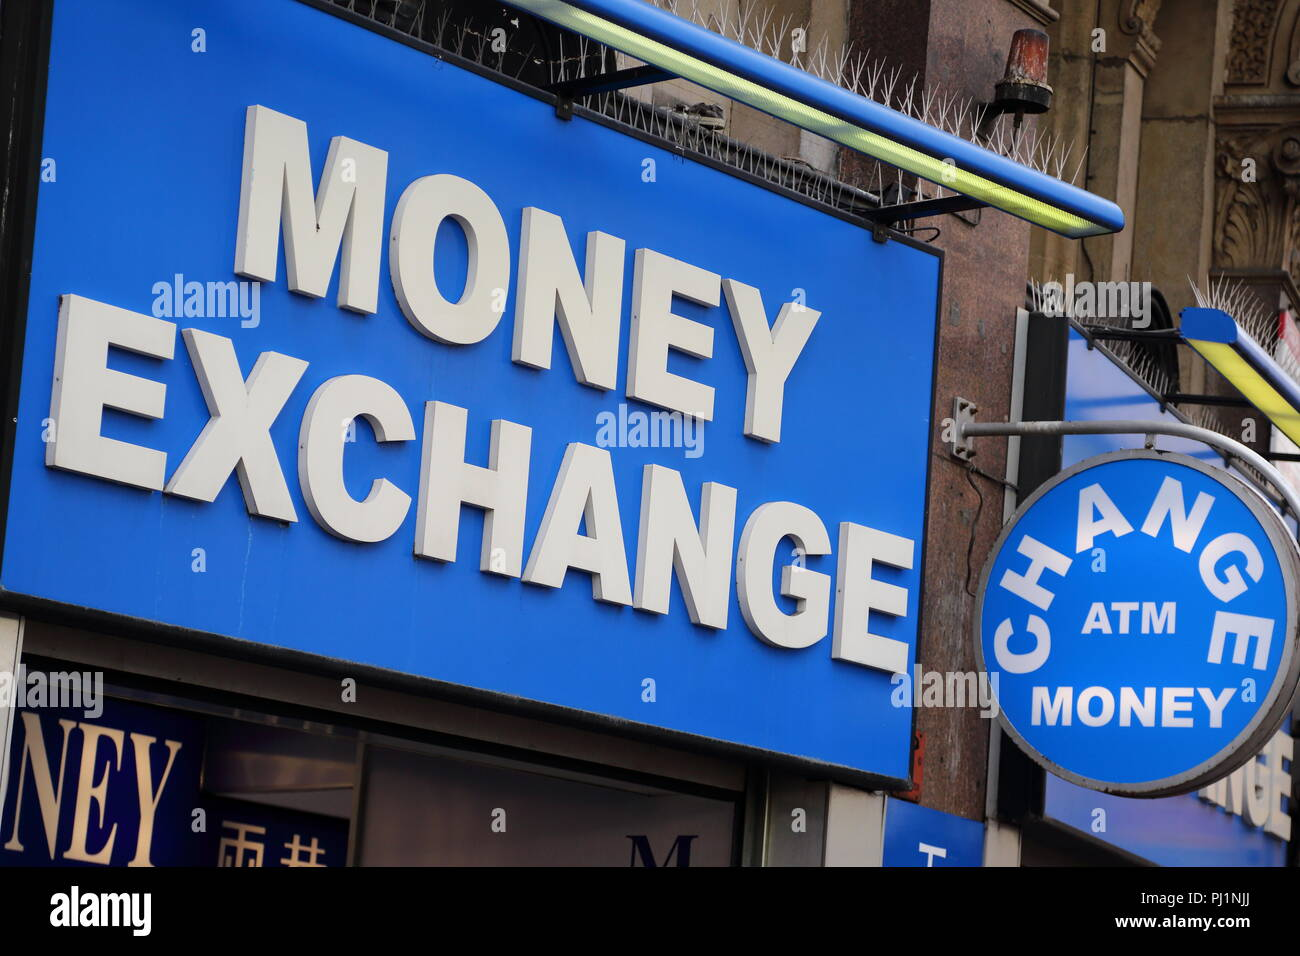 Foreign money exchange stock photos foreign money exchange stock images alamy - Western union bureau de change ...